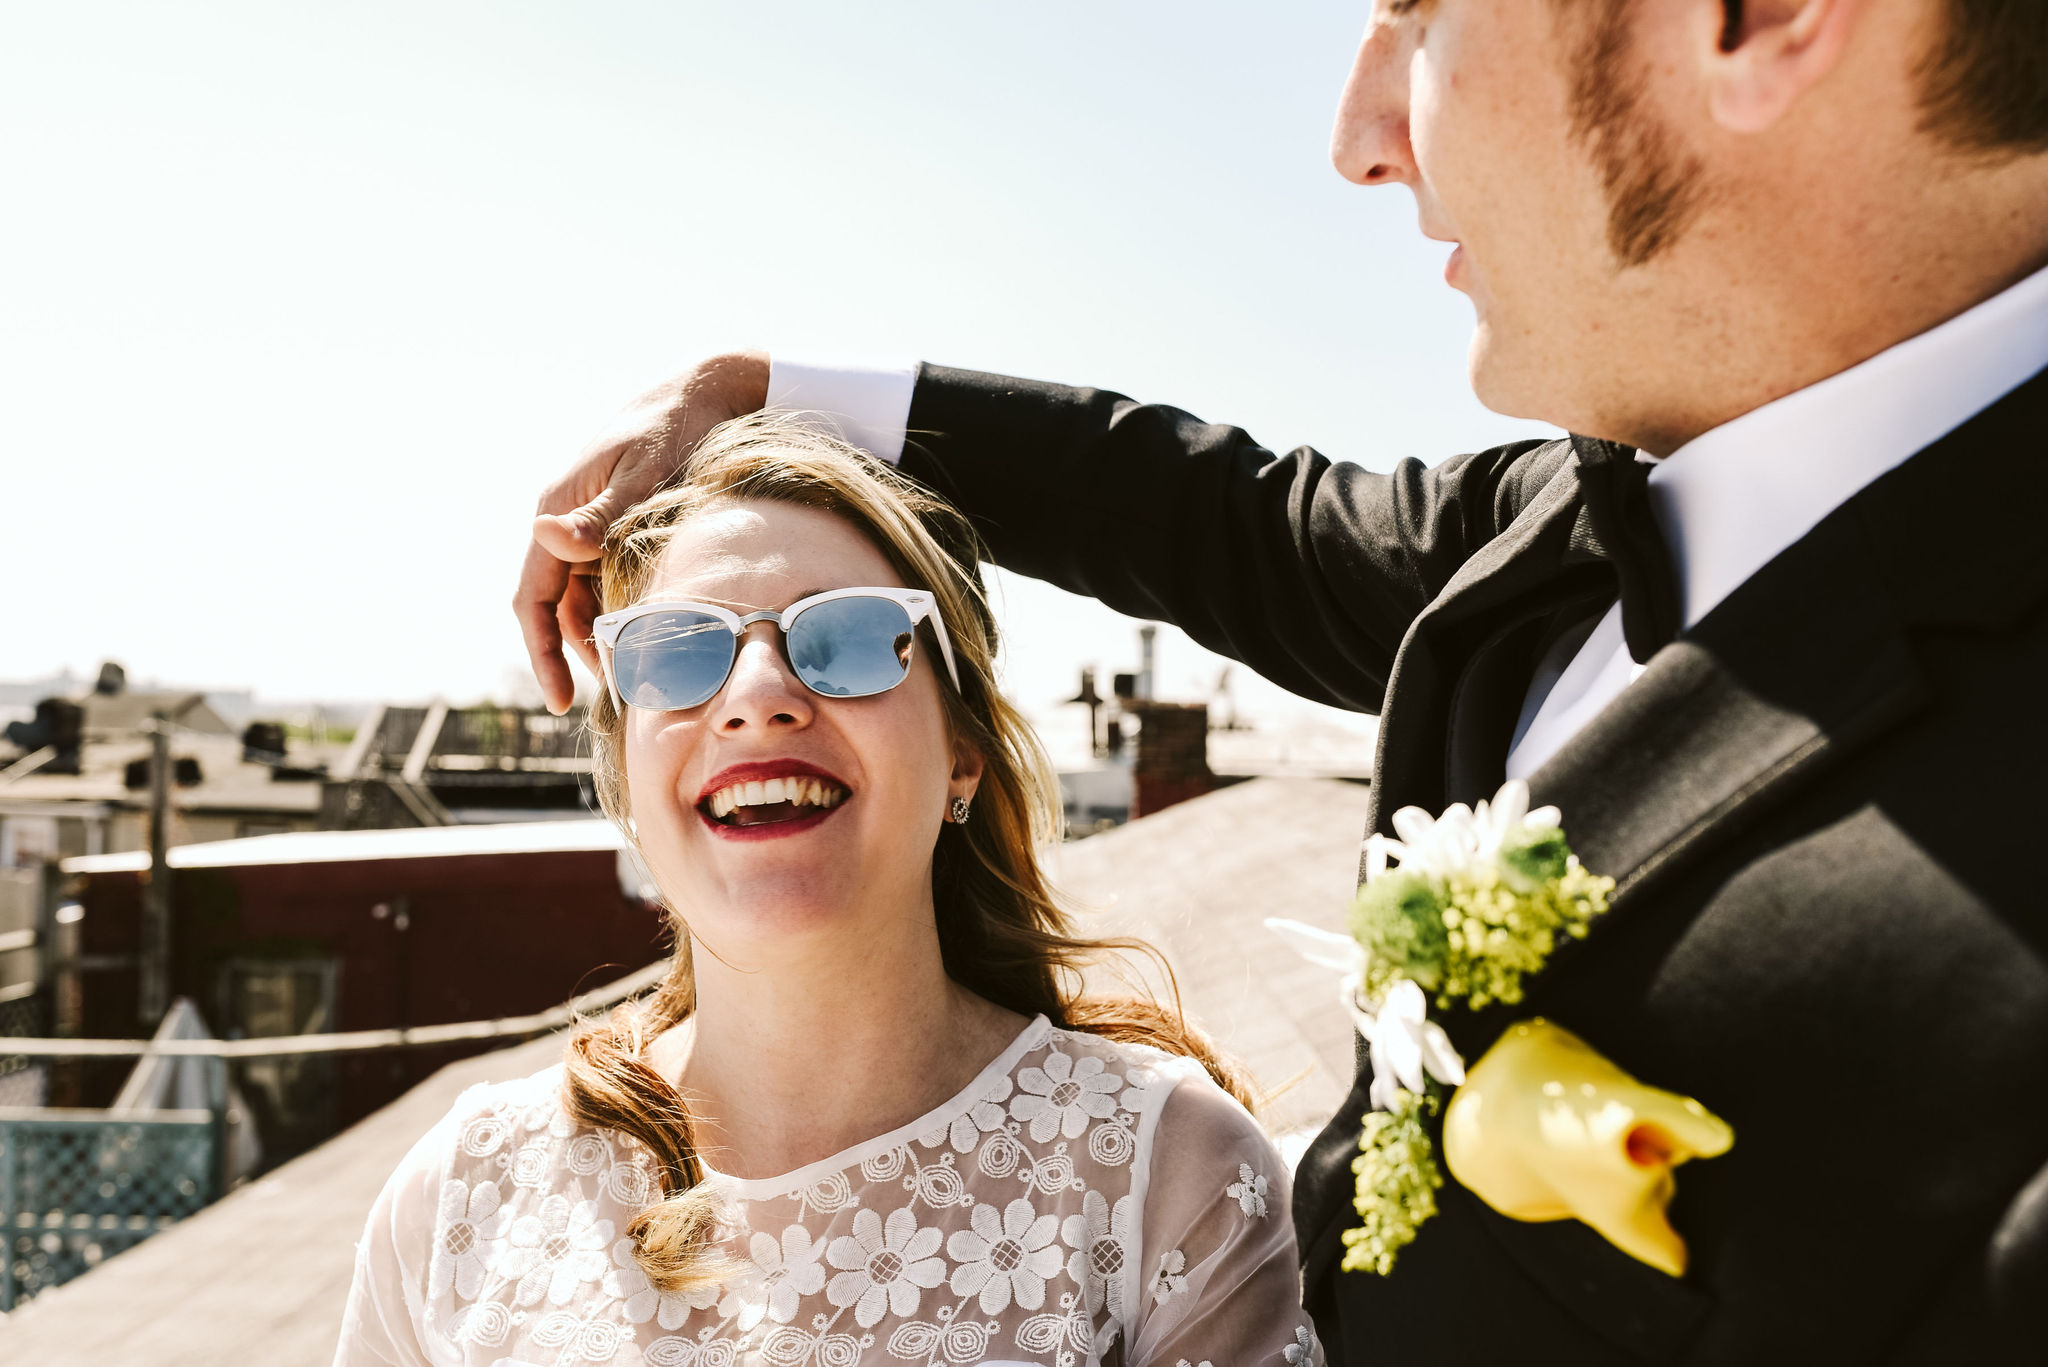 Baltimore, Church Wedding, Maryland Wedding Photographer, Vintage, Classic, 50s Style, Groom Moving Hair Out of Bride's Face, Windy Sunny Day, Bride Laughing and Smiling